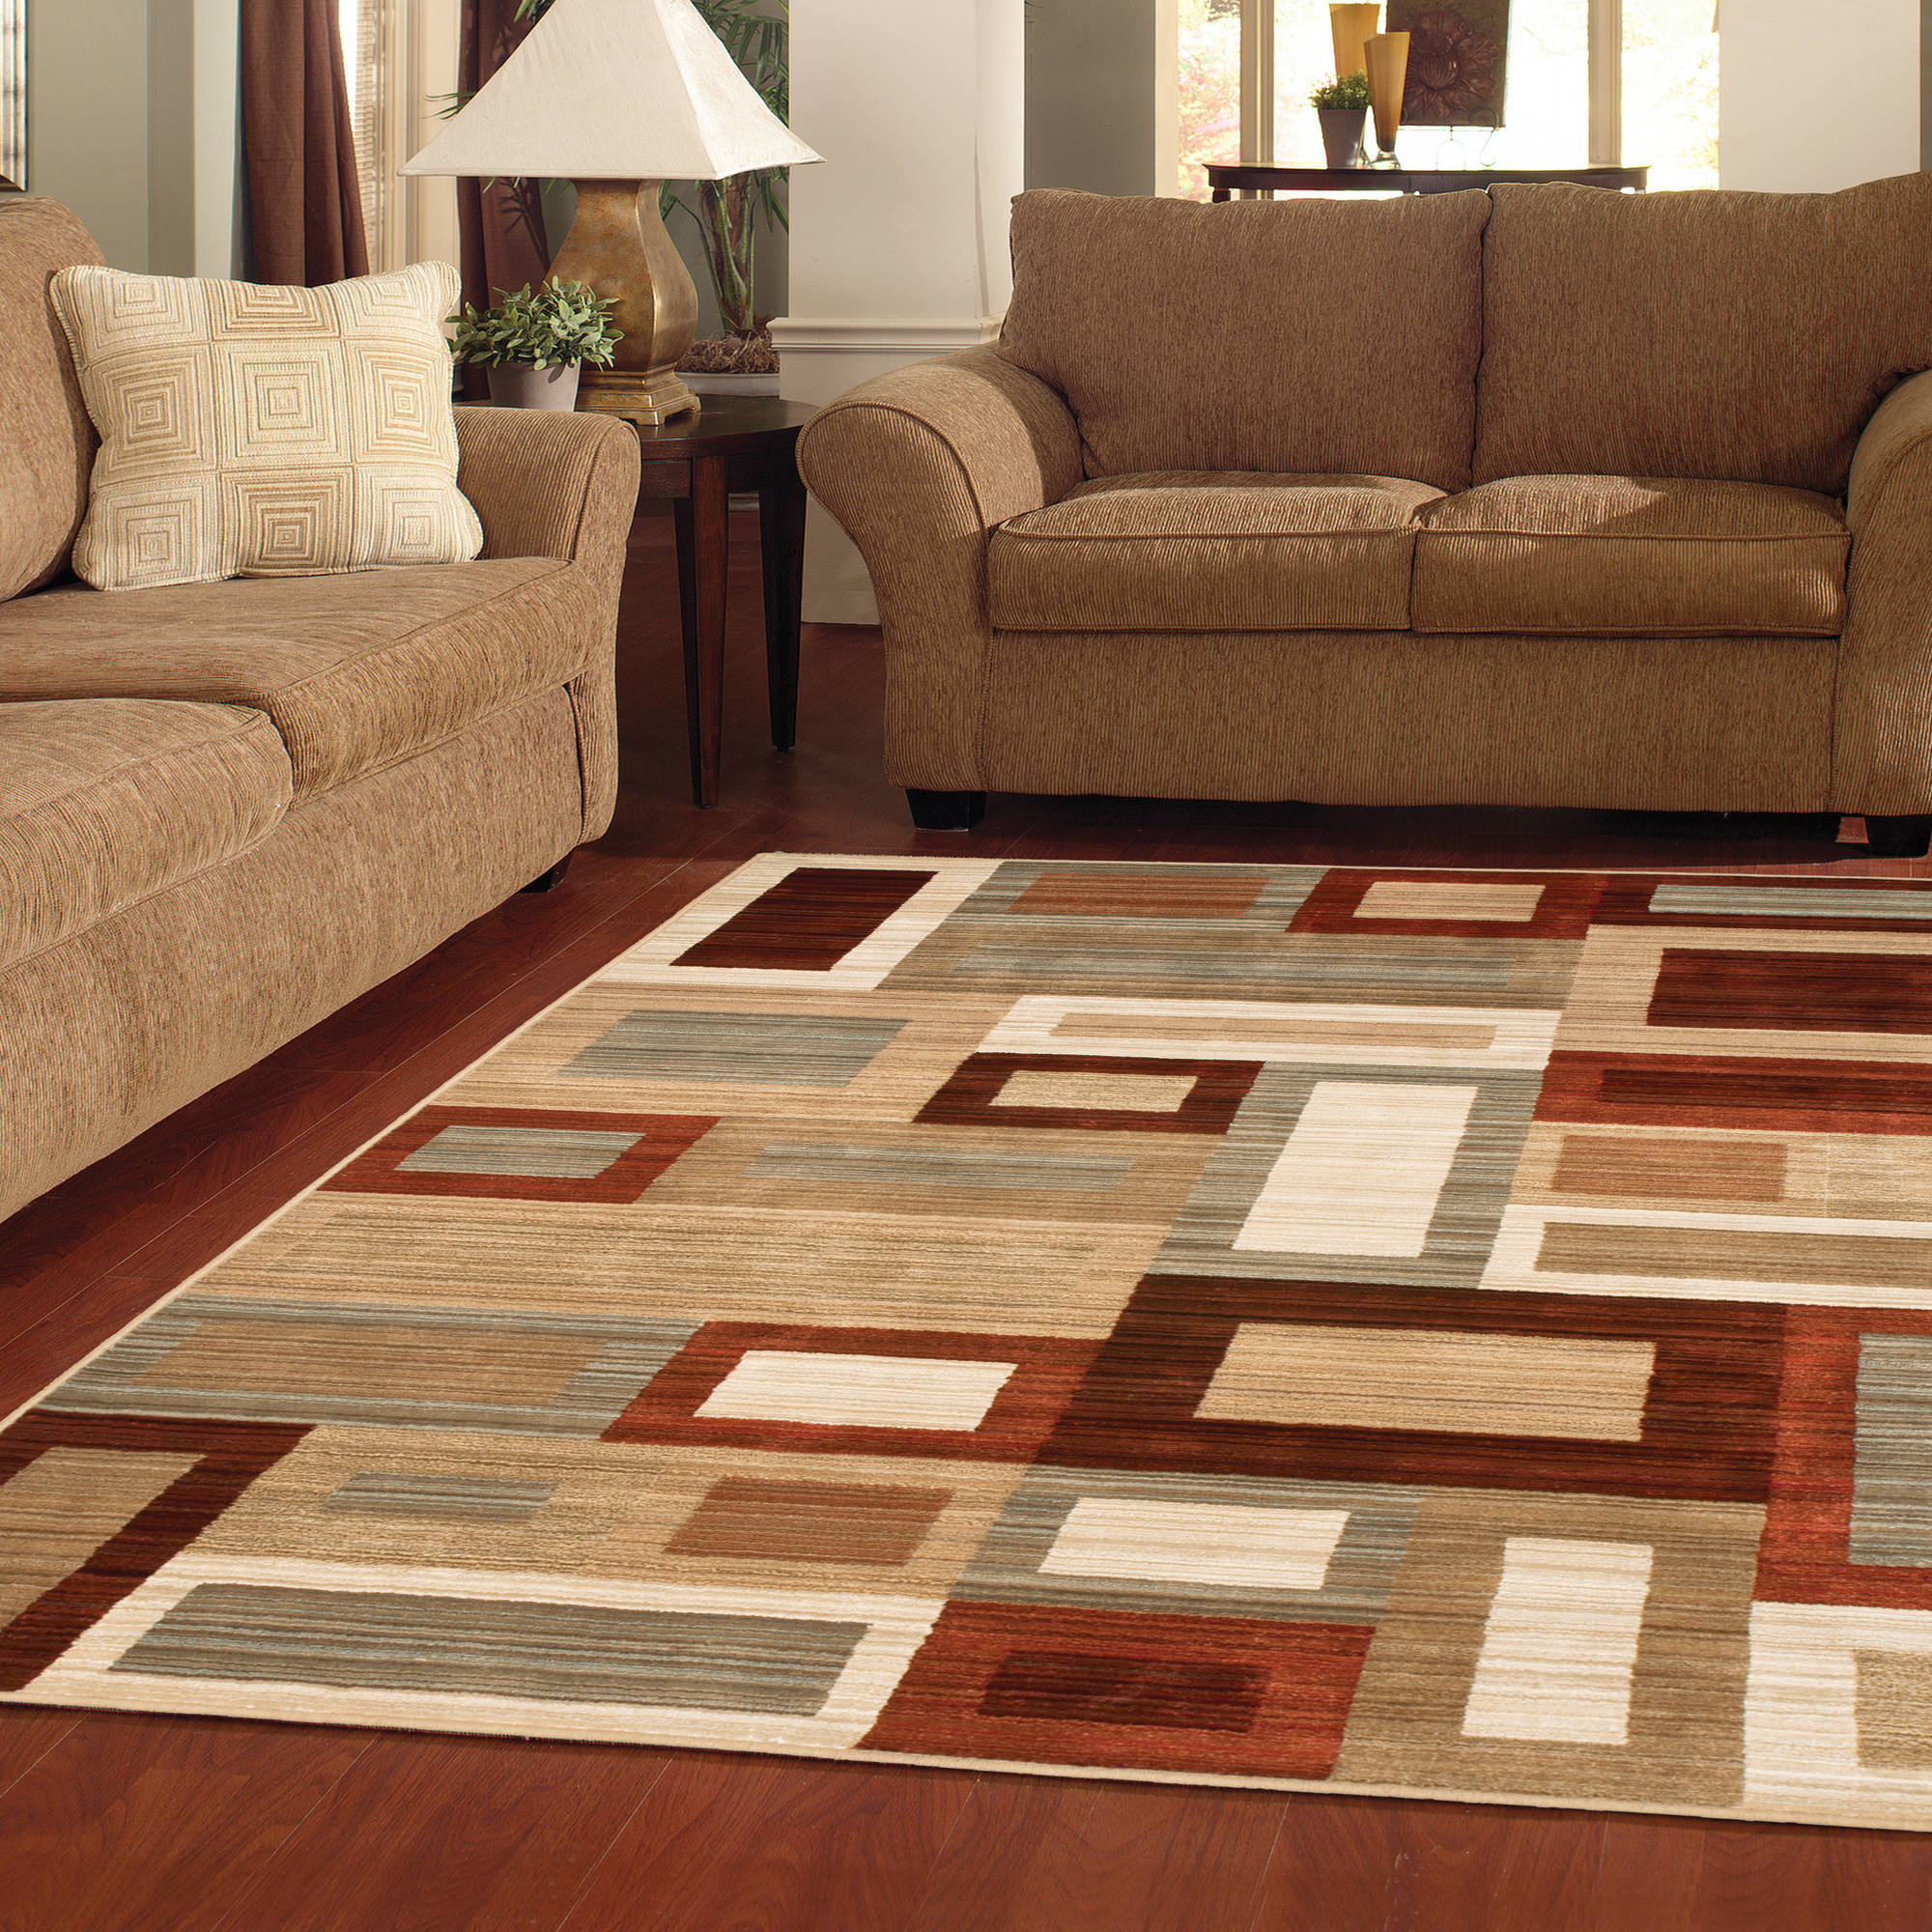 Better homes and gardens franklin squares area rug or runner better homes and gardens franklin squares area rug or runner walmart dailygadgetfo Choice Image